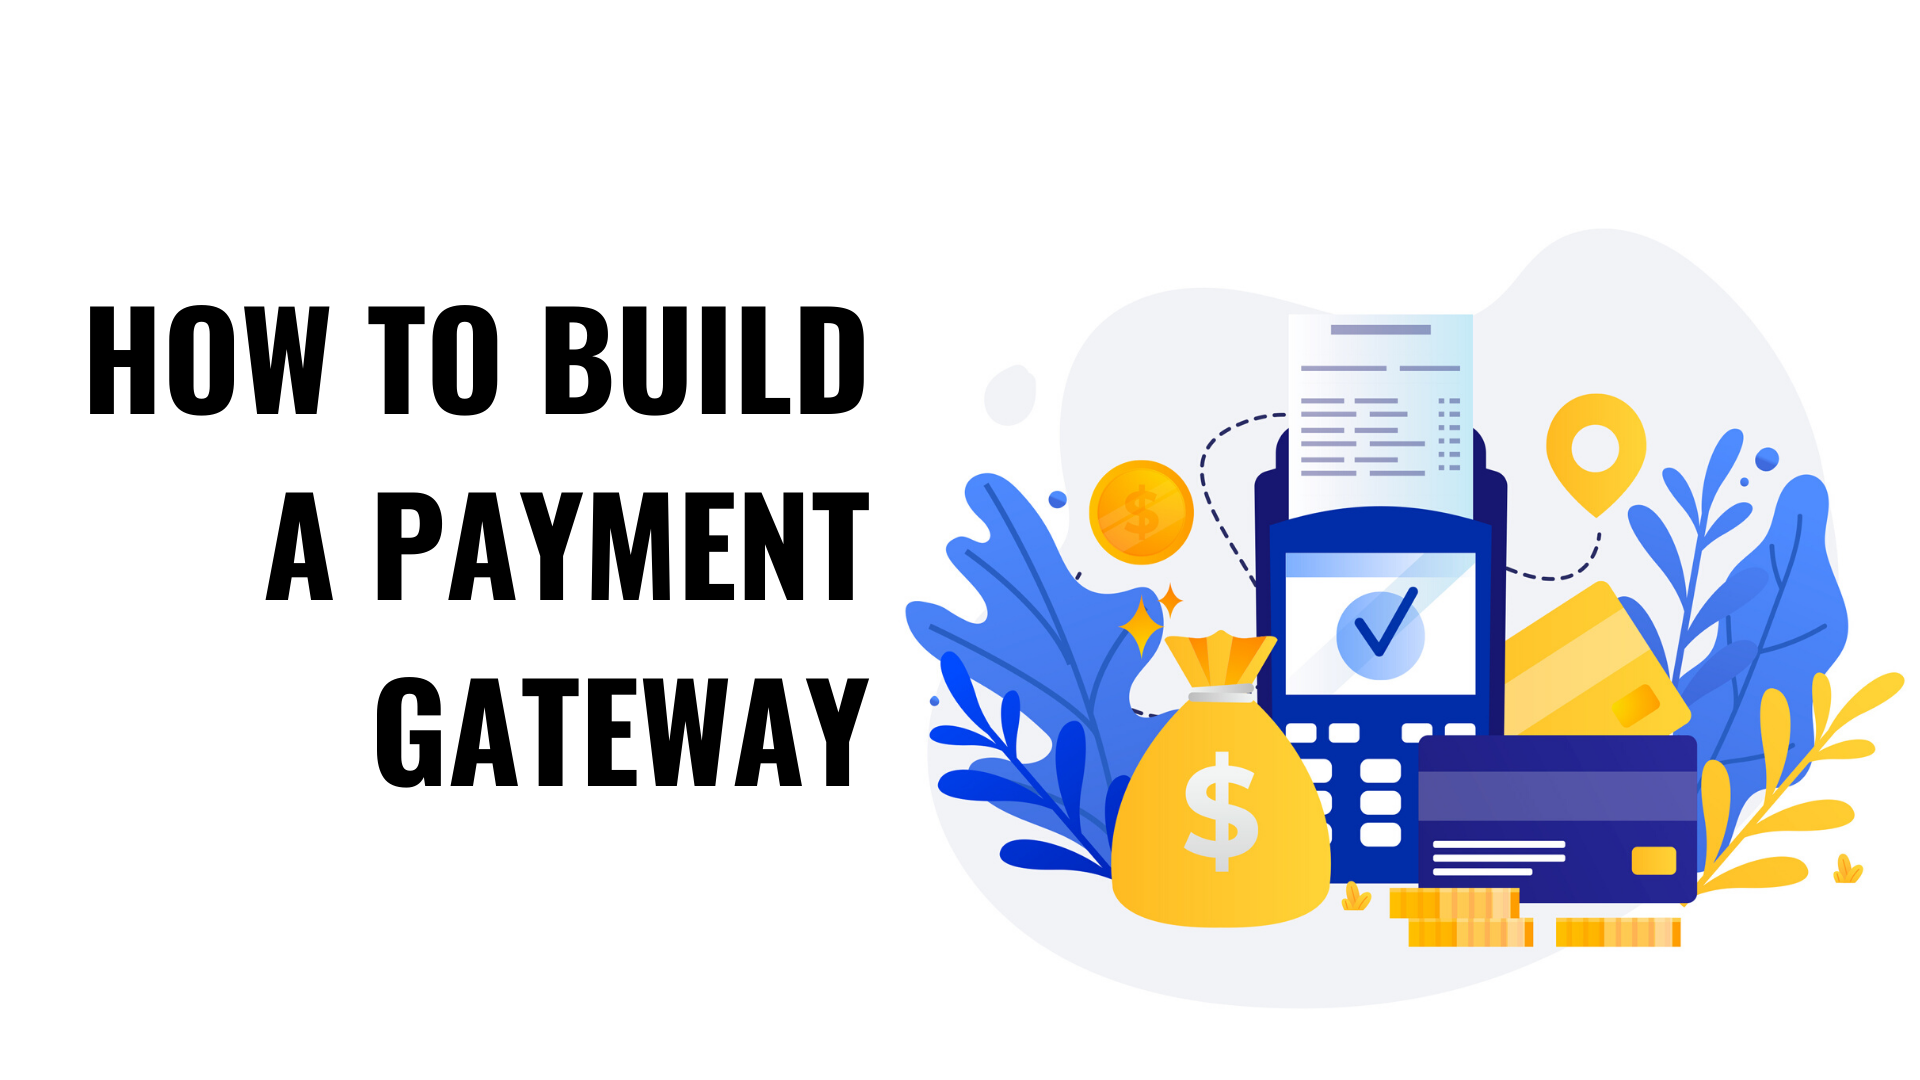 How to Build a Payment Gateway